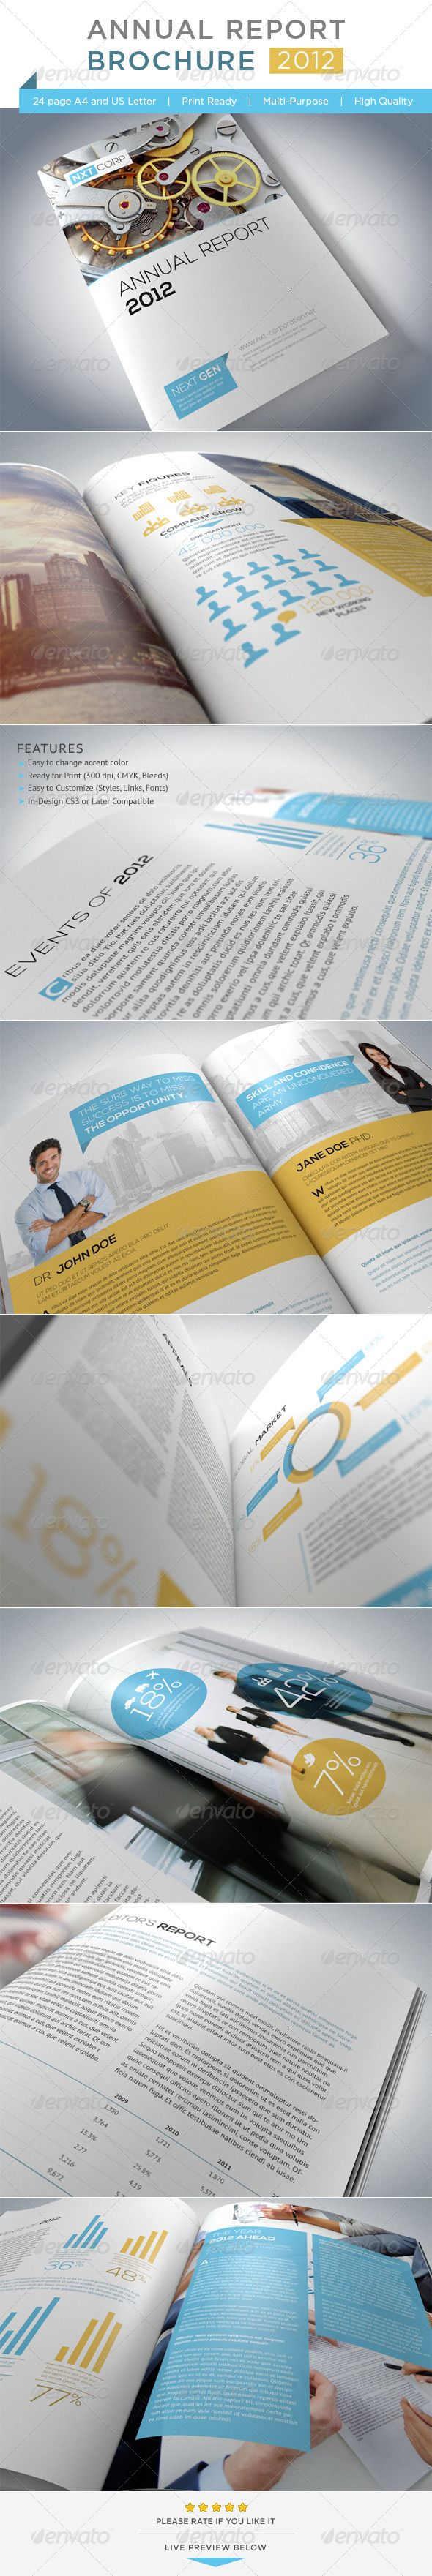 Annual Report Brochure - GraphicRiver Item for Sale